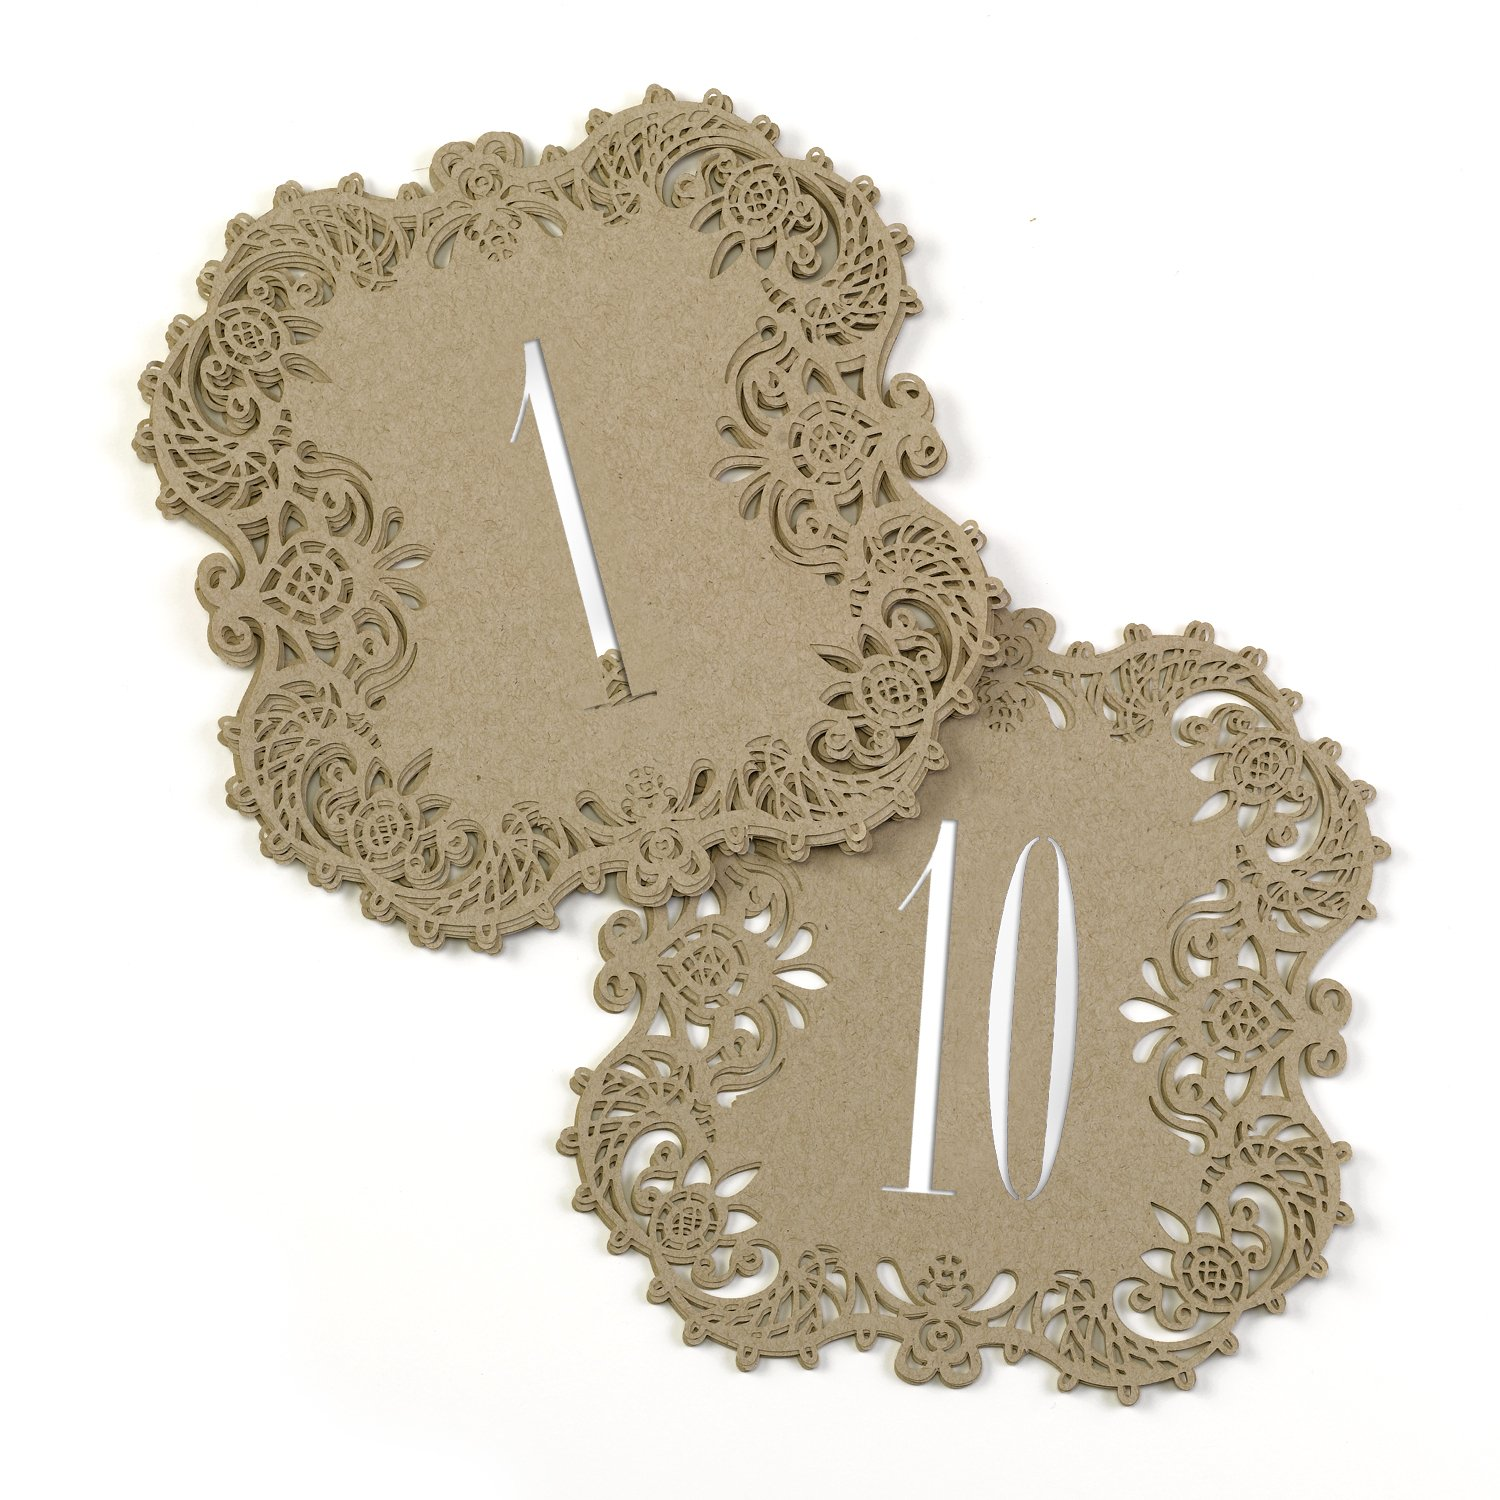 Hortense B. Hewitt 30846 Kraft Laser Cut Table Number Cards, Numbers 1 to 10, Tan